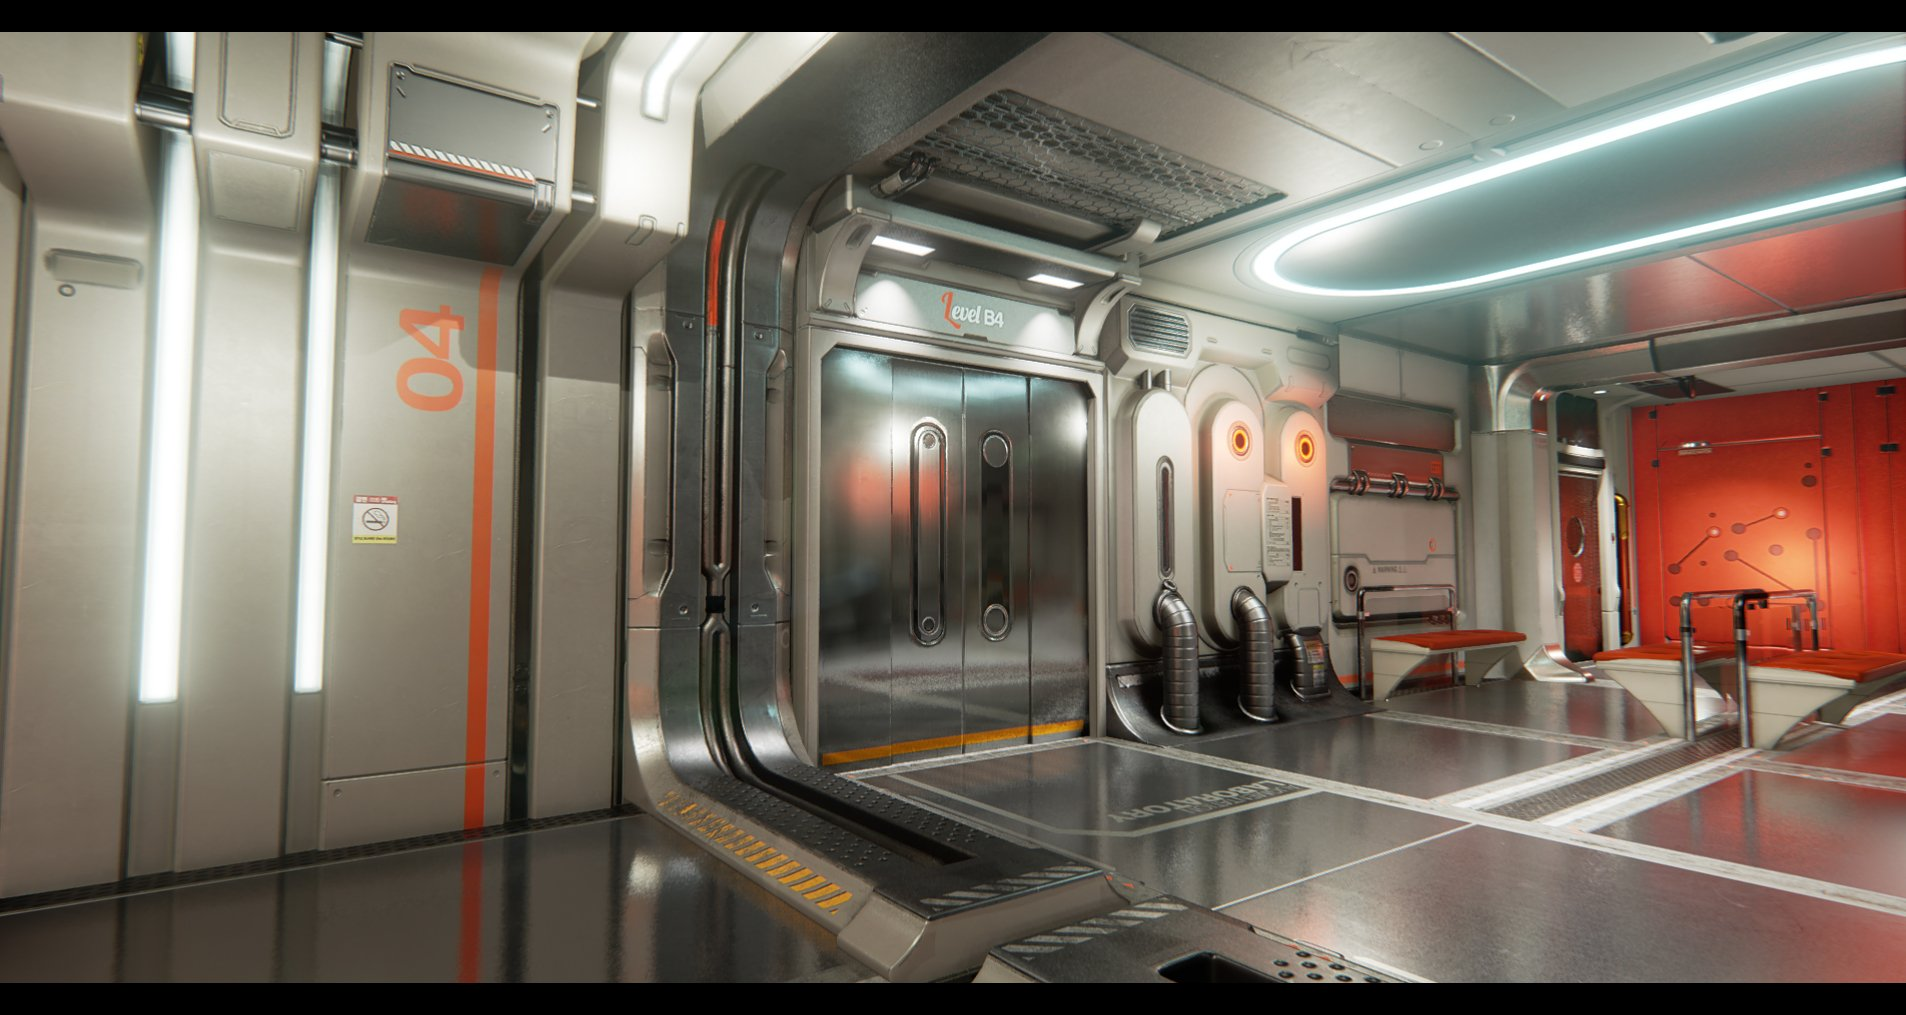 Amazing Deus Ex Scene Rendered in Unreal Engine 4 Gives a